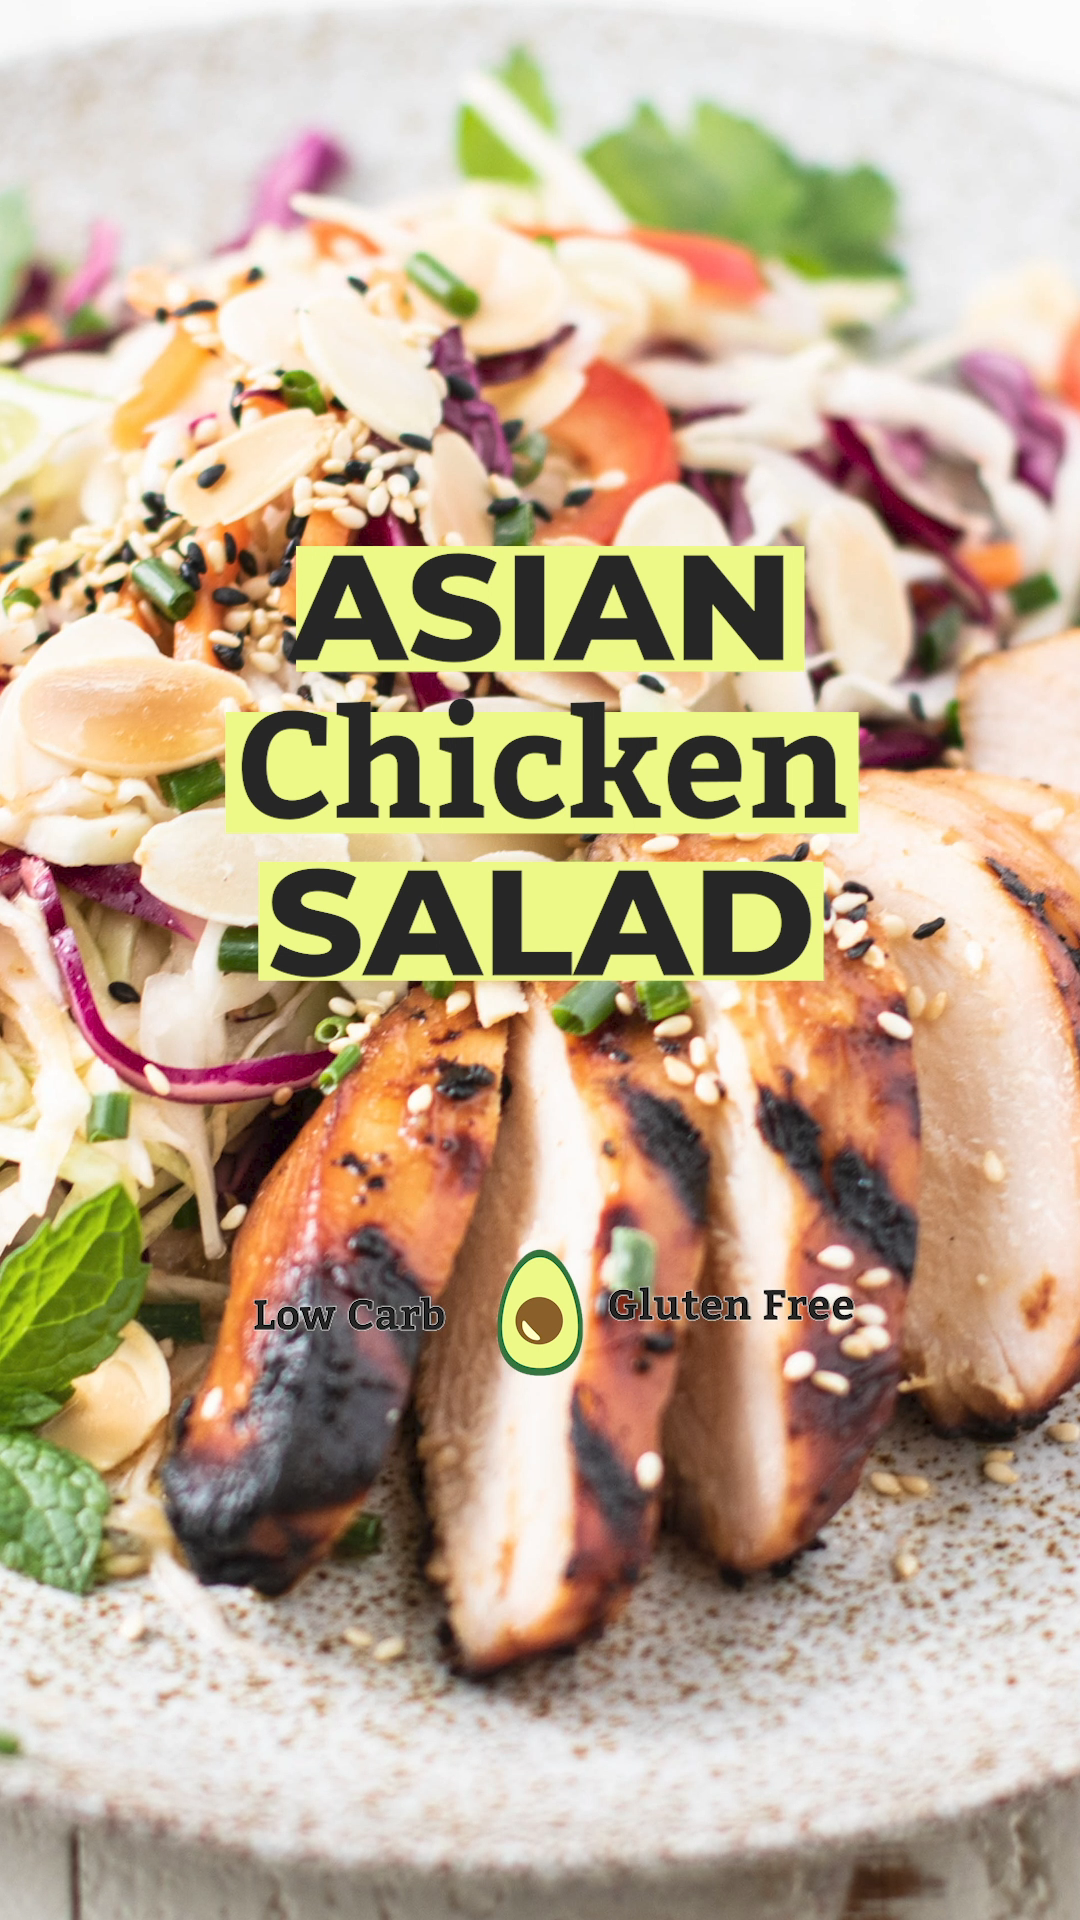 Keto Asian Chicken Salad A crunchy cabbage salad made with grilled marinated chicken and almonds The best asian cabbage salad dressing  BLISSFULLYLOWCARBCOM